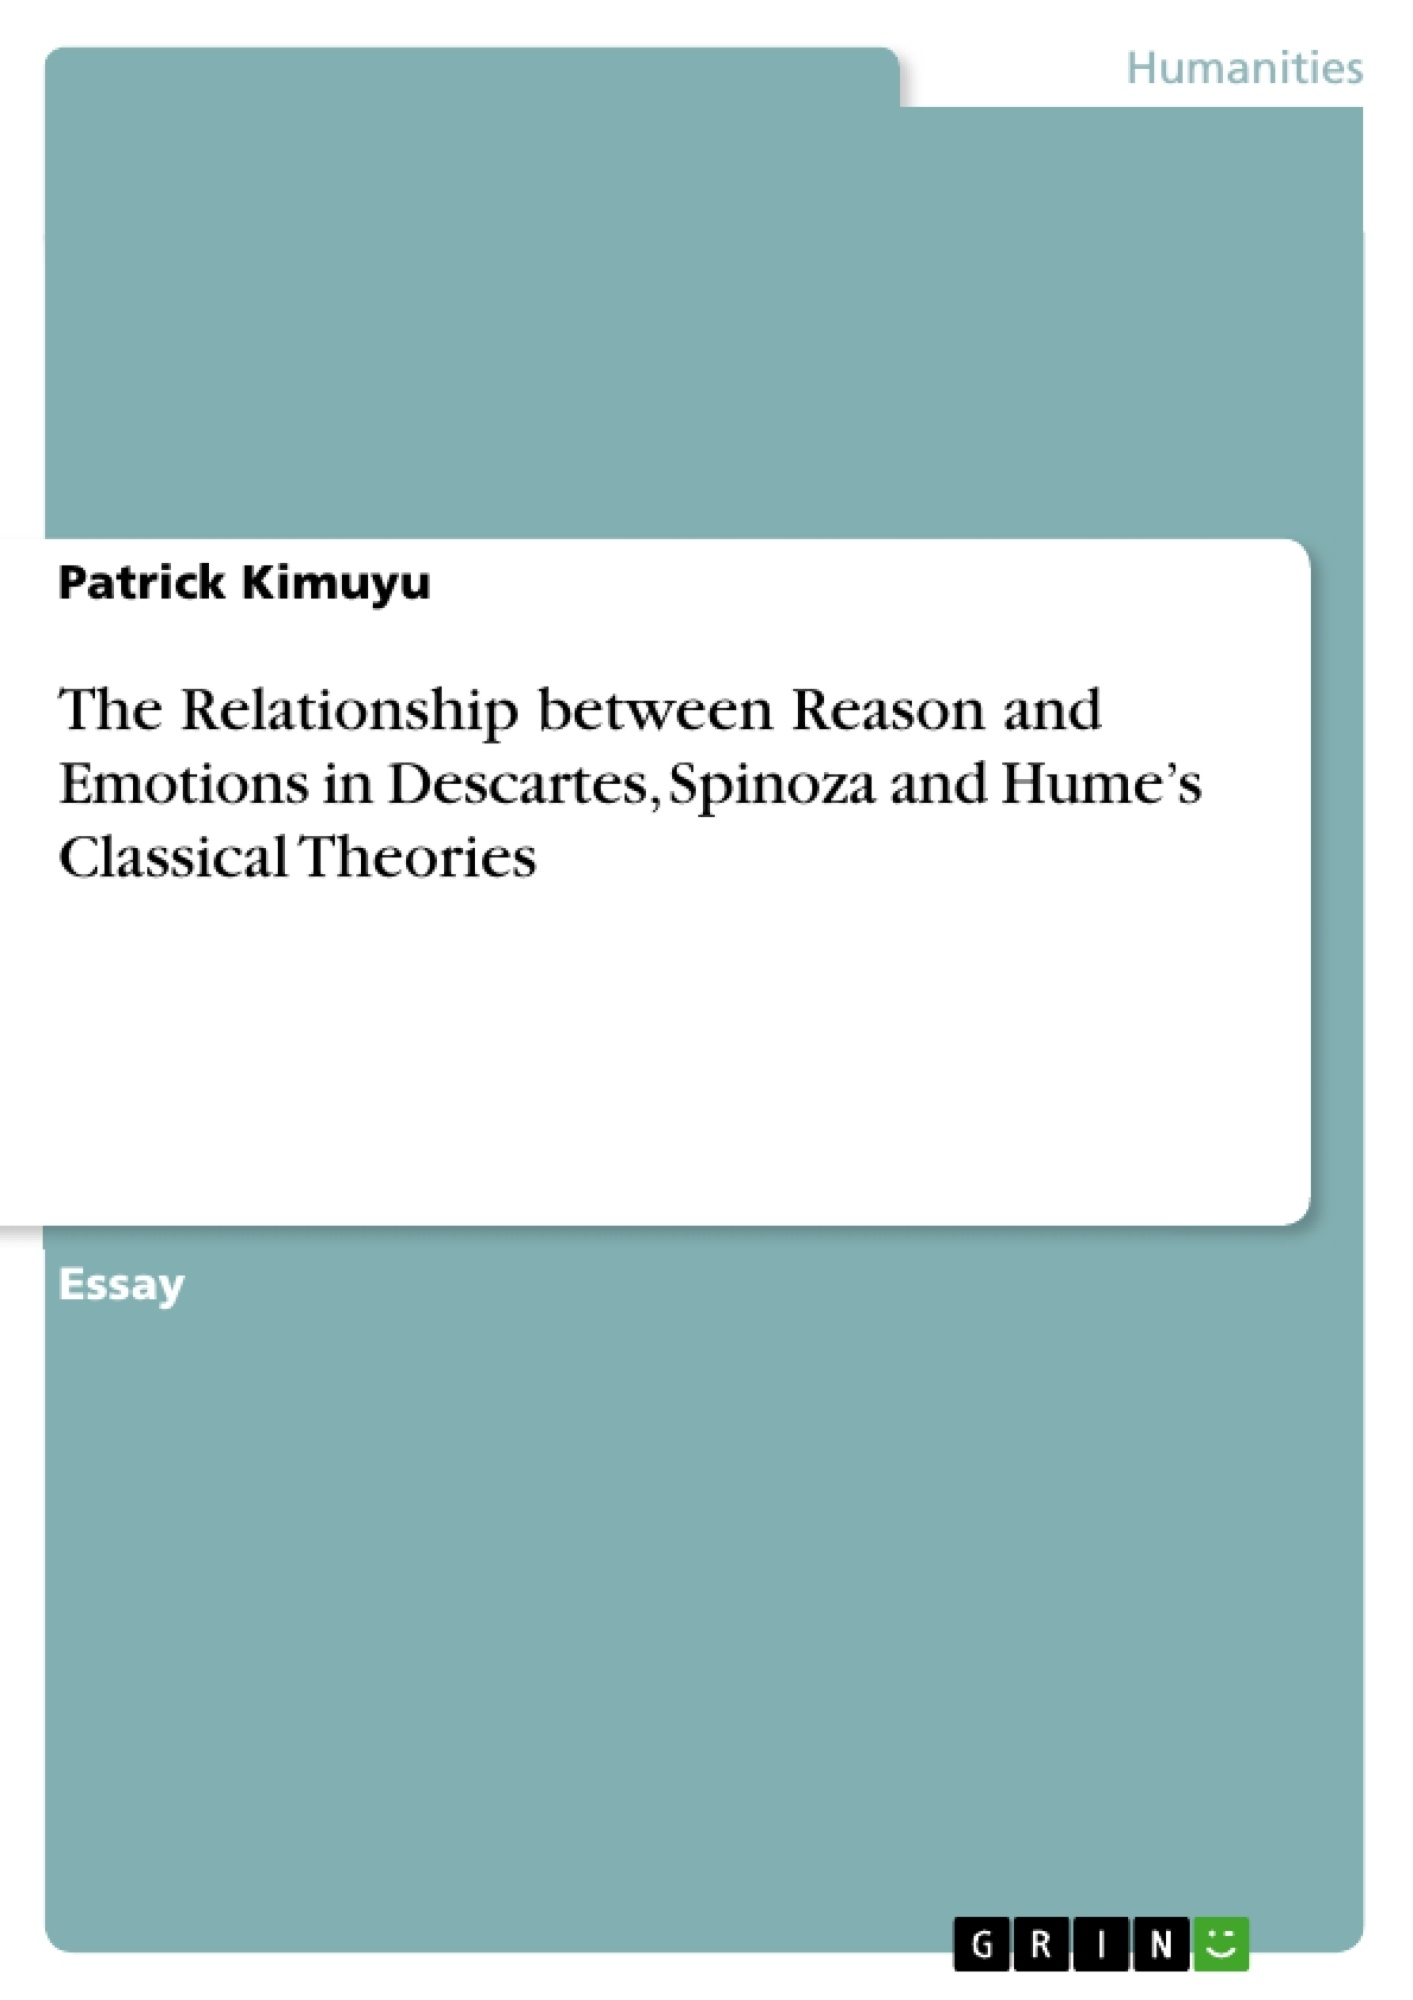 Title: The Relationship between Reason and Emotions in Descartes, Spinoza and Hume's Classical Theories